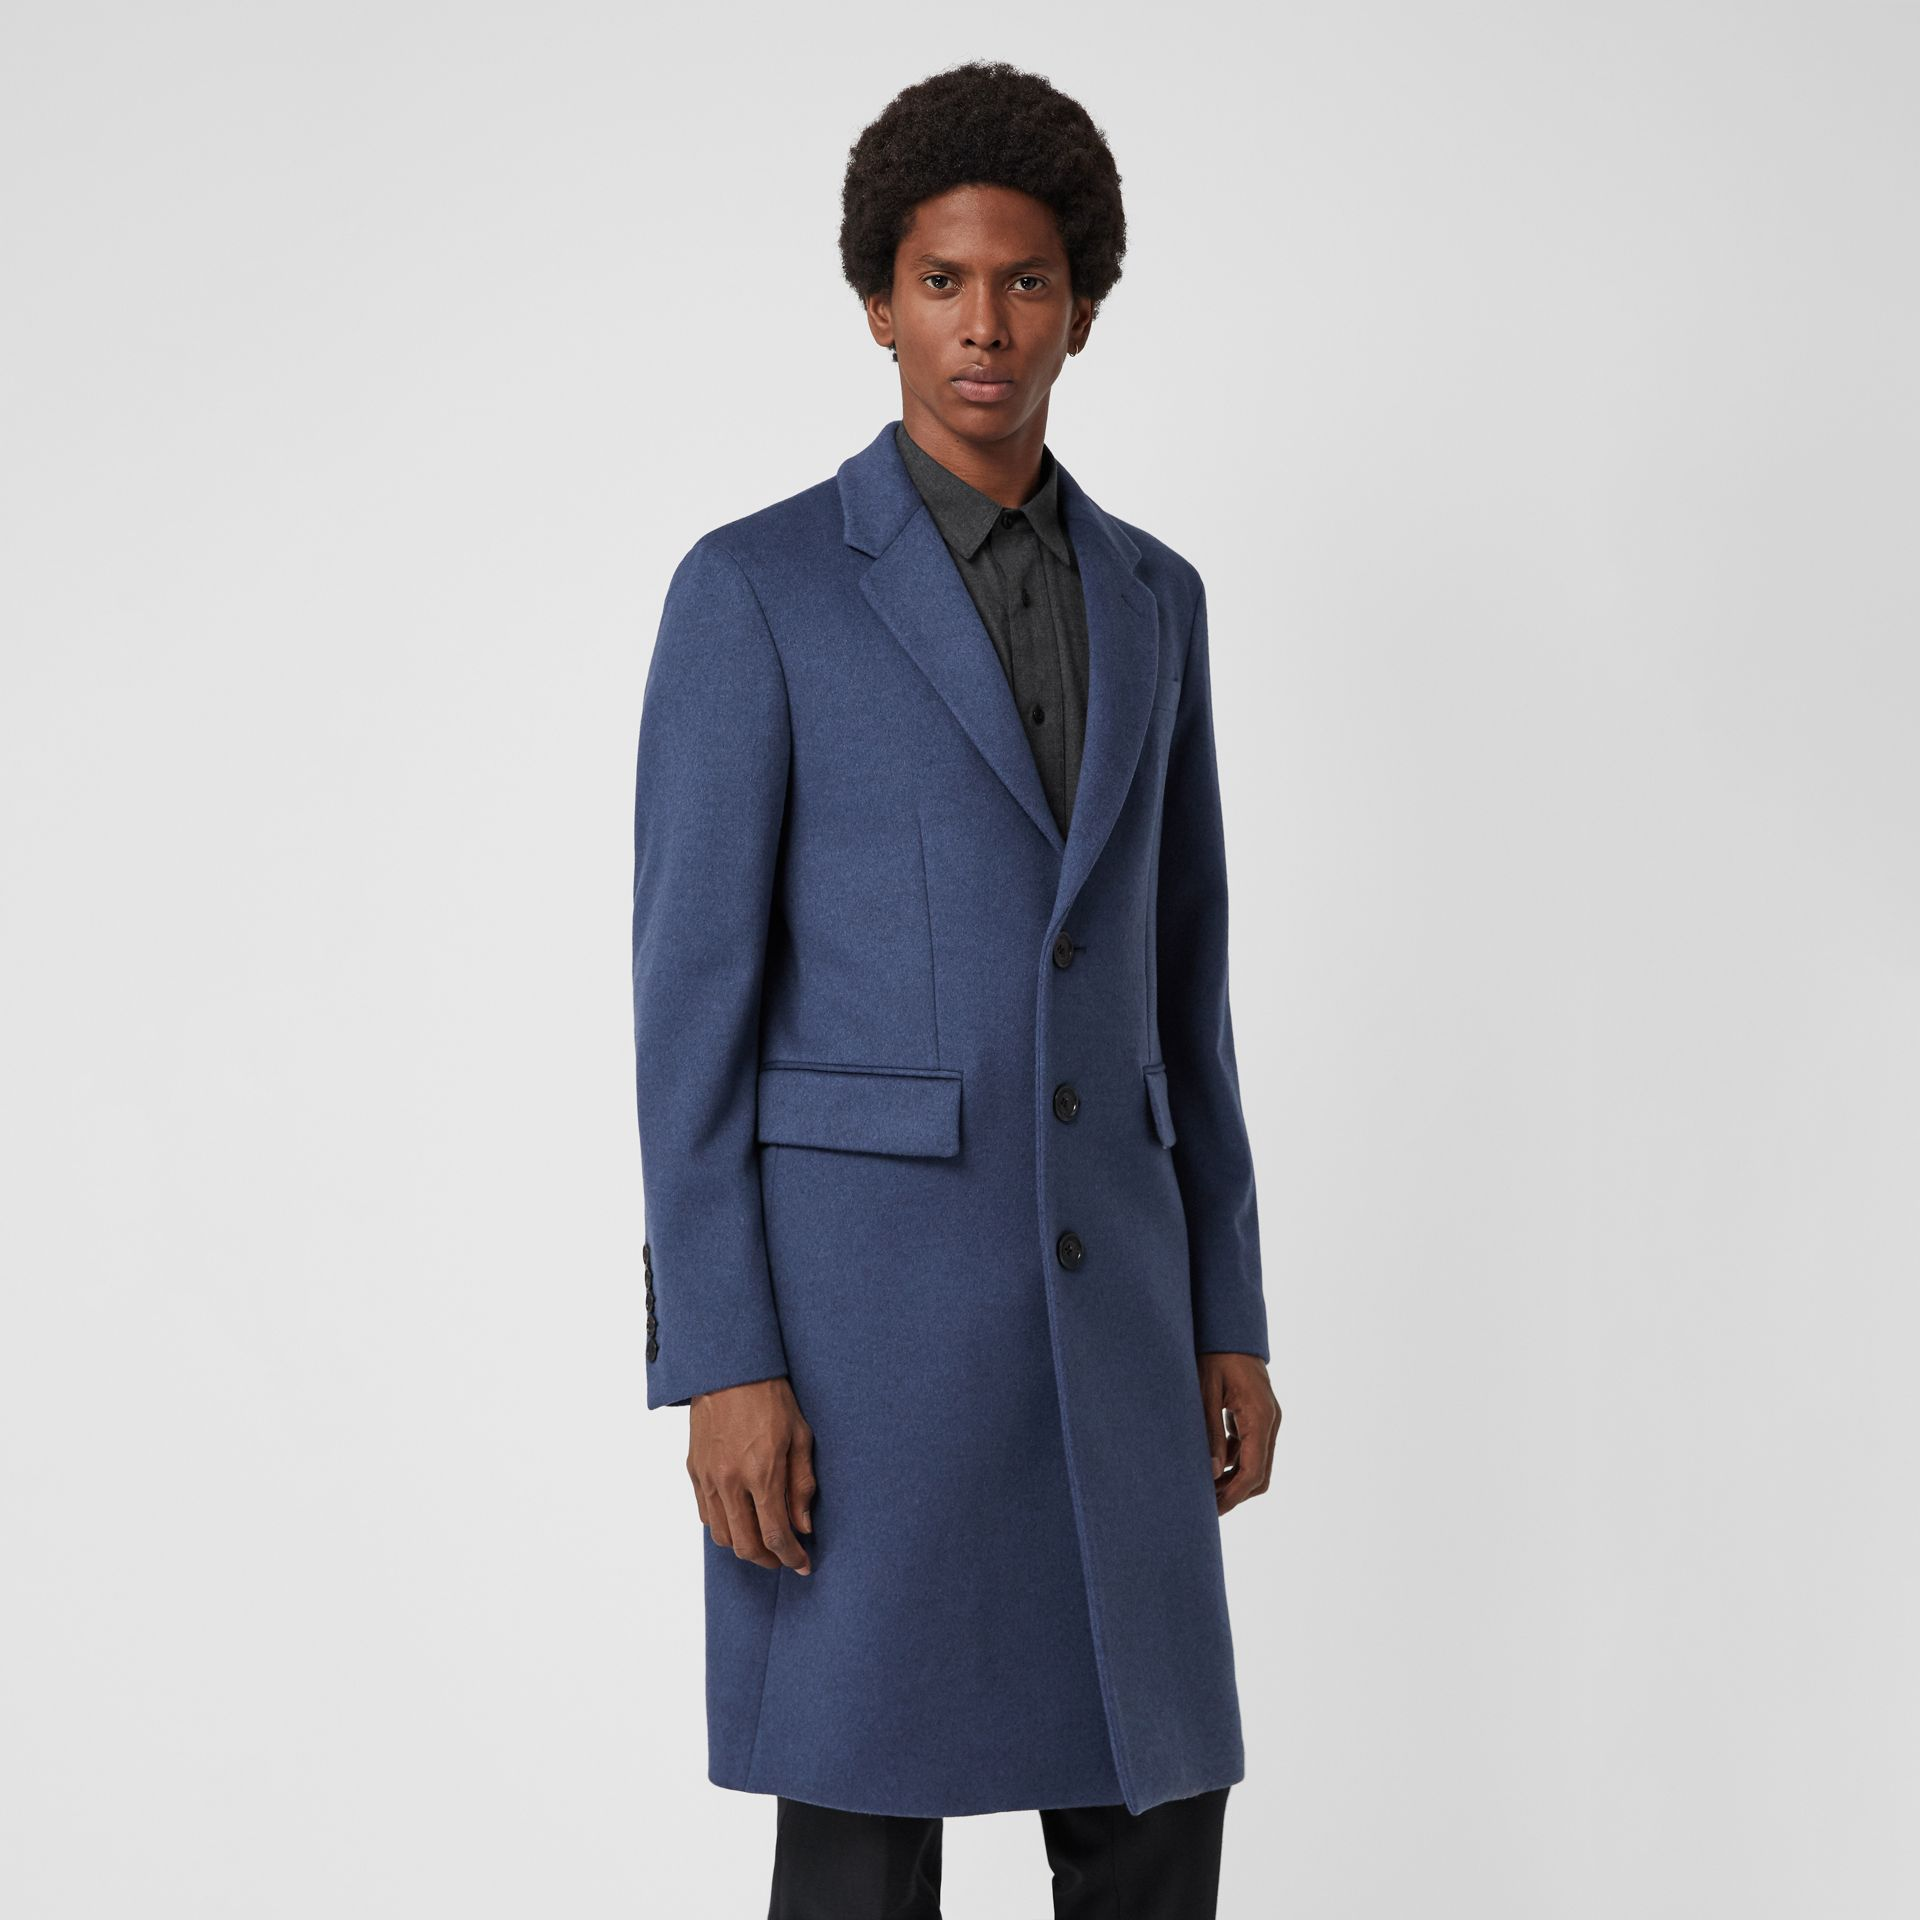 Wool Cashmere Tailored Coat in Dark Canvas Blue - Men | Burberry Canada - gallery image 4